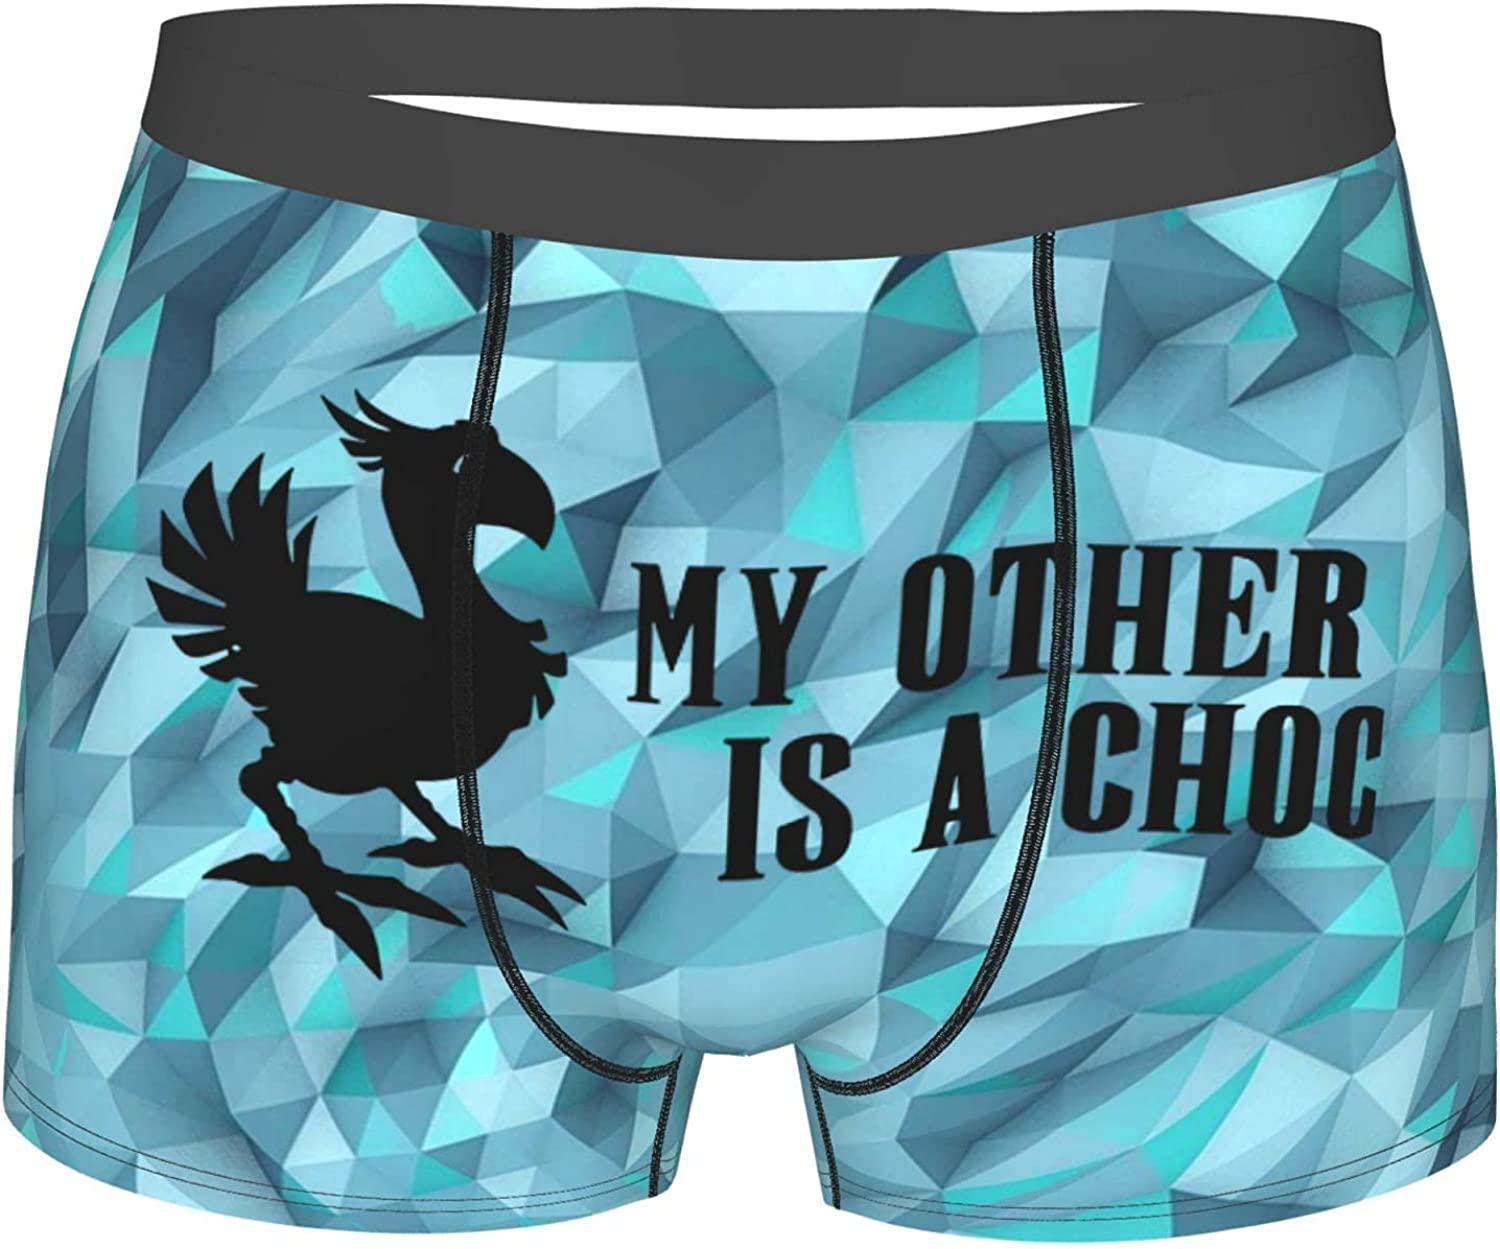 My Other Ride Is A Chocobo Boxers Men Boys' Lightweight Micro Stretch Boxers